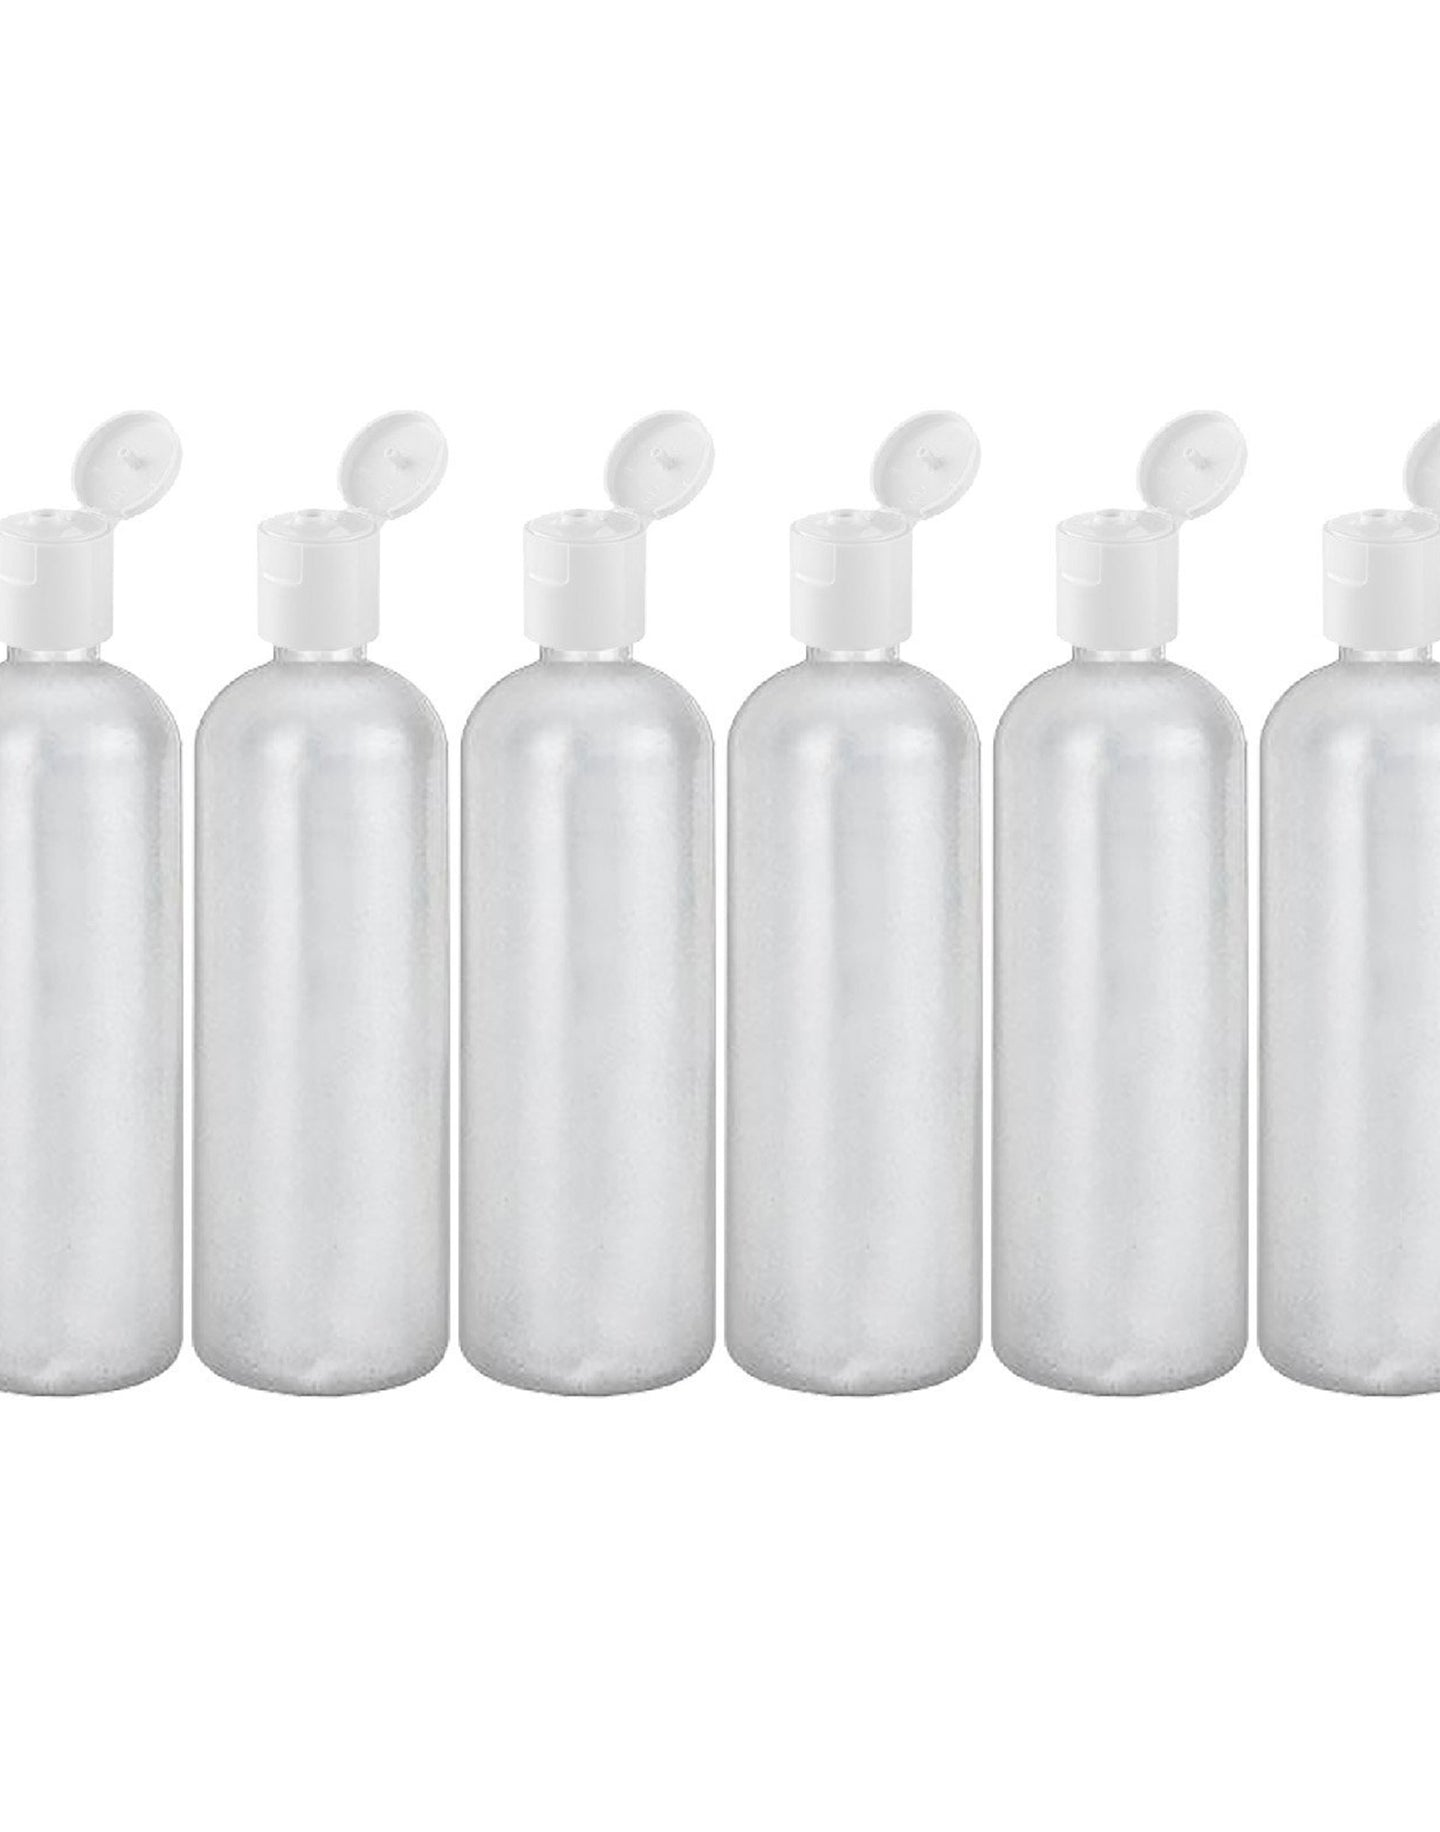 MoYo Natural Labs 16 oz Travel Containers, Empty Shampoo Bottles with Flip Caps, BPA Free HDPE Plastic Squeezable Toiletry/Cosmetics Bottle (Pack of 6, HDPE Translucent White)